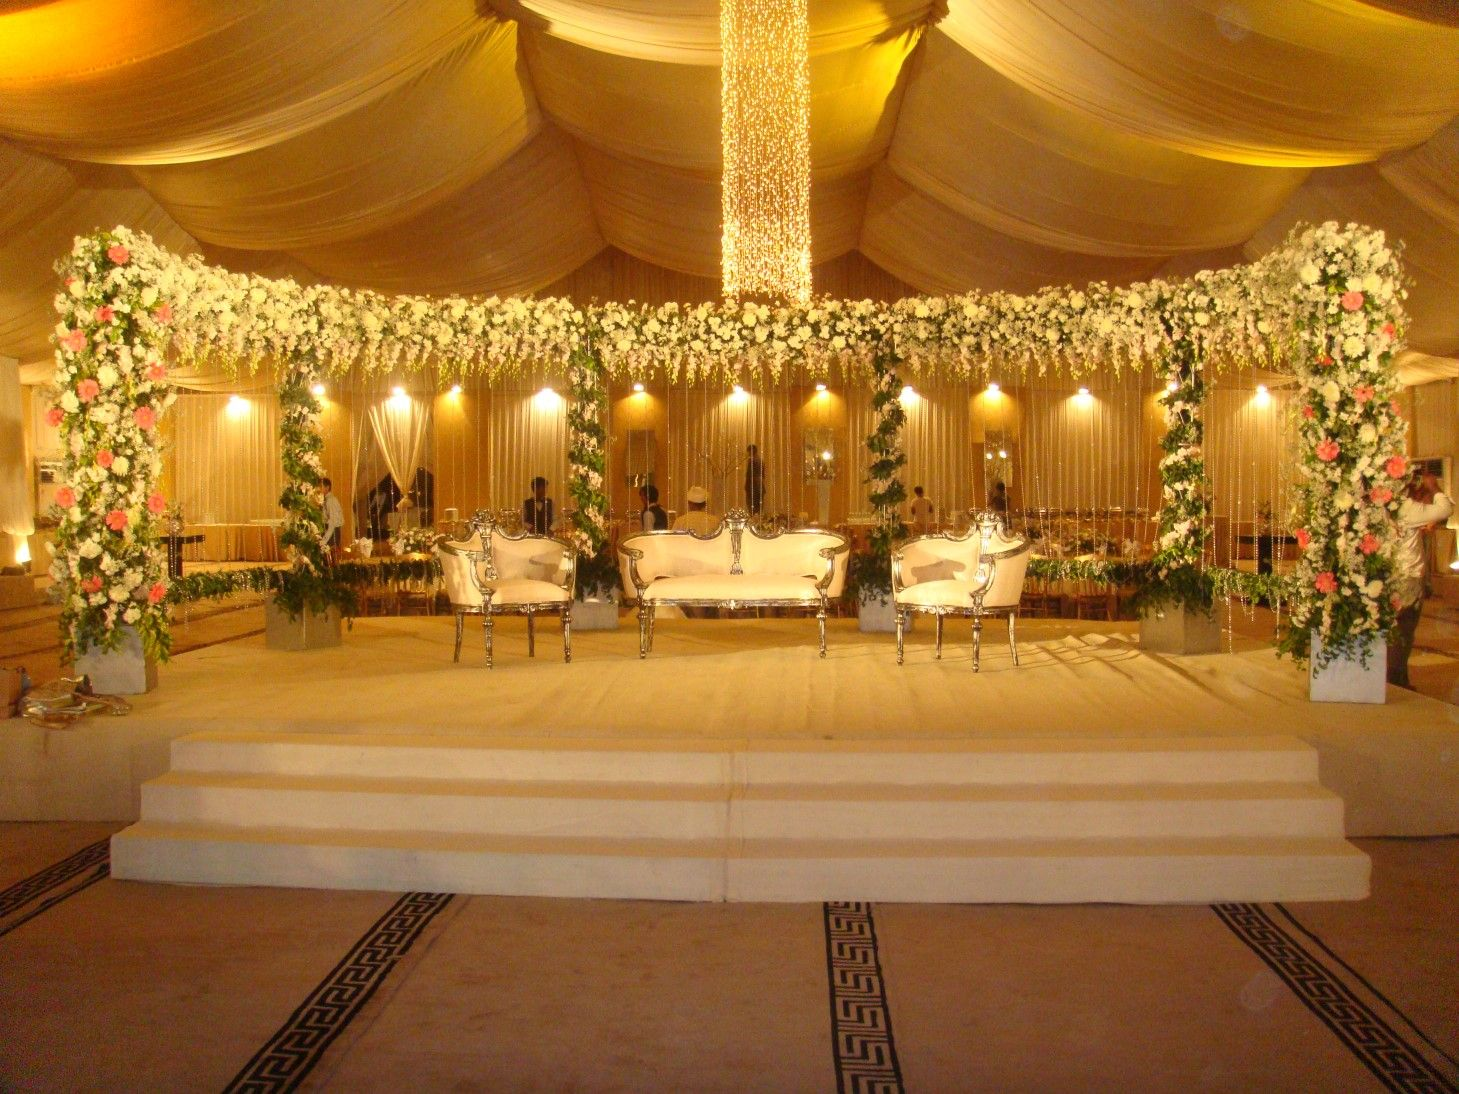 Wedding Stage Decoration with Gold Color Take Pinterest Colors Wedding and Wedding stage